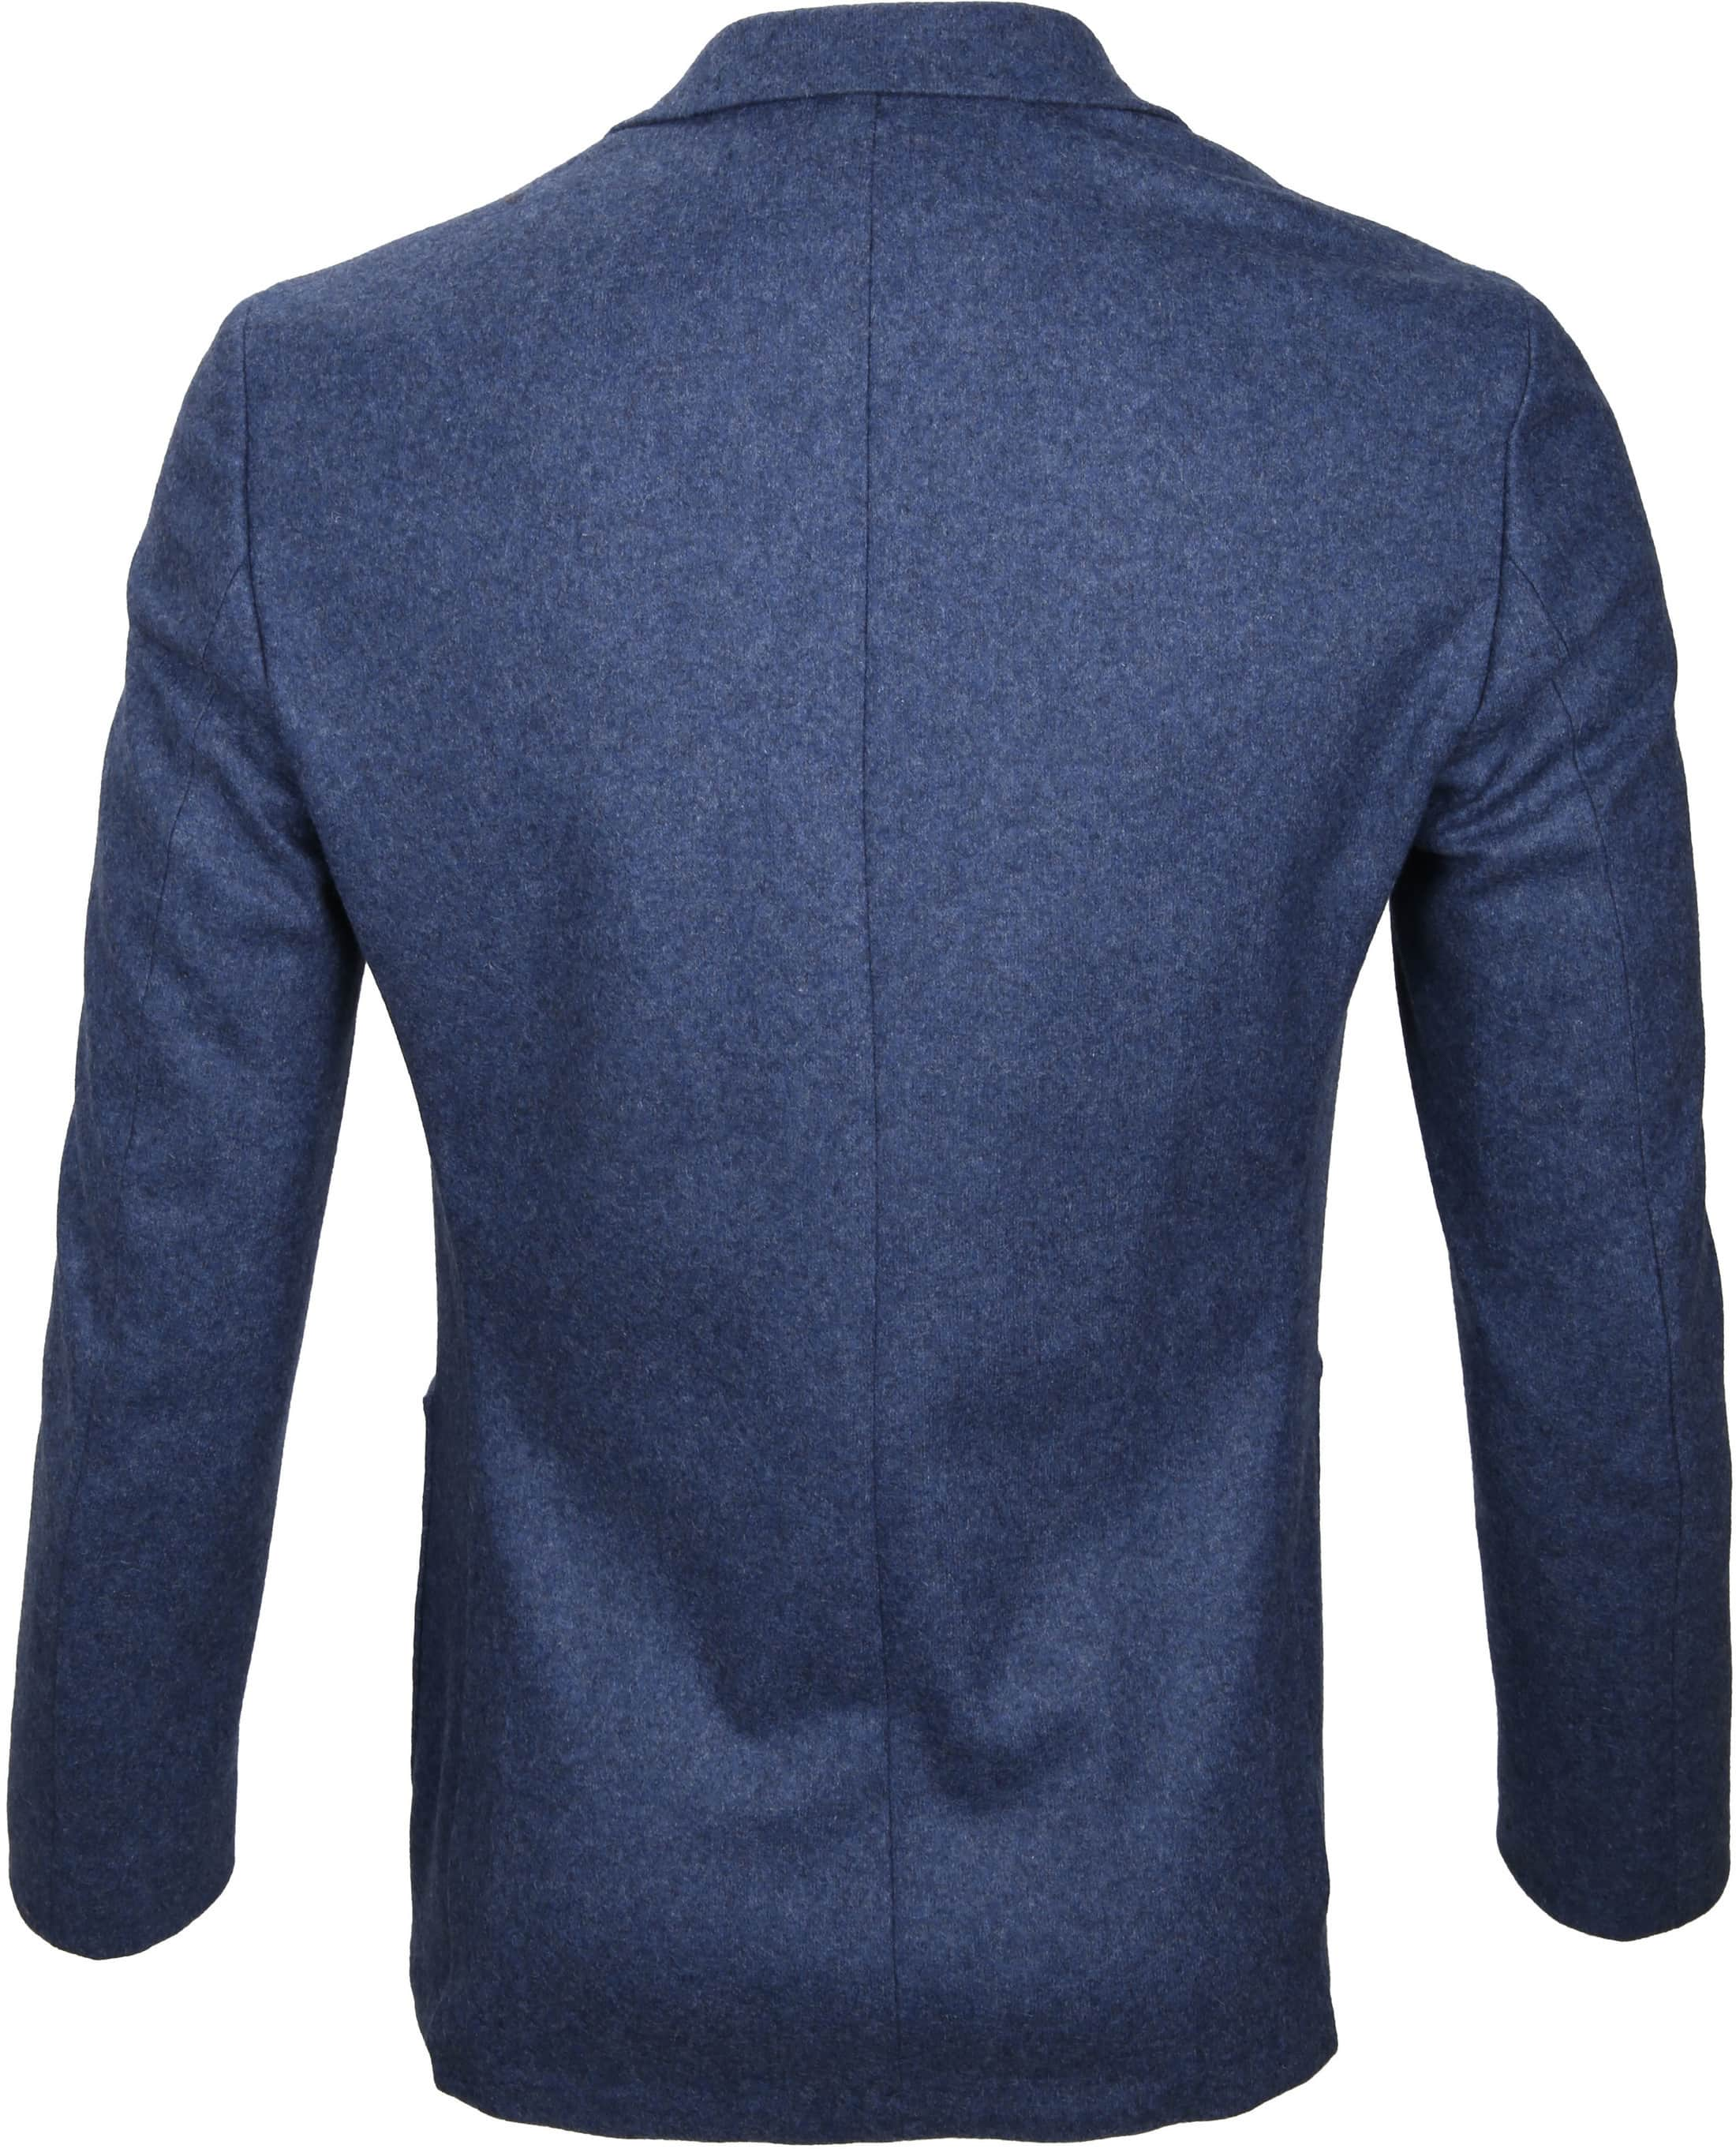 Suitable Blazer Easky Blau foto 5